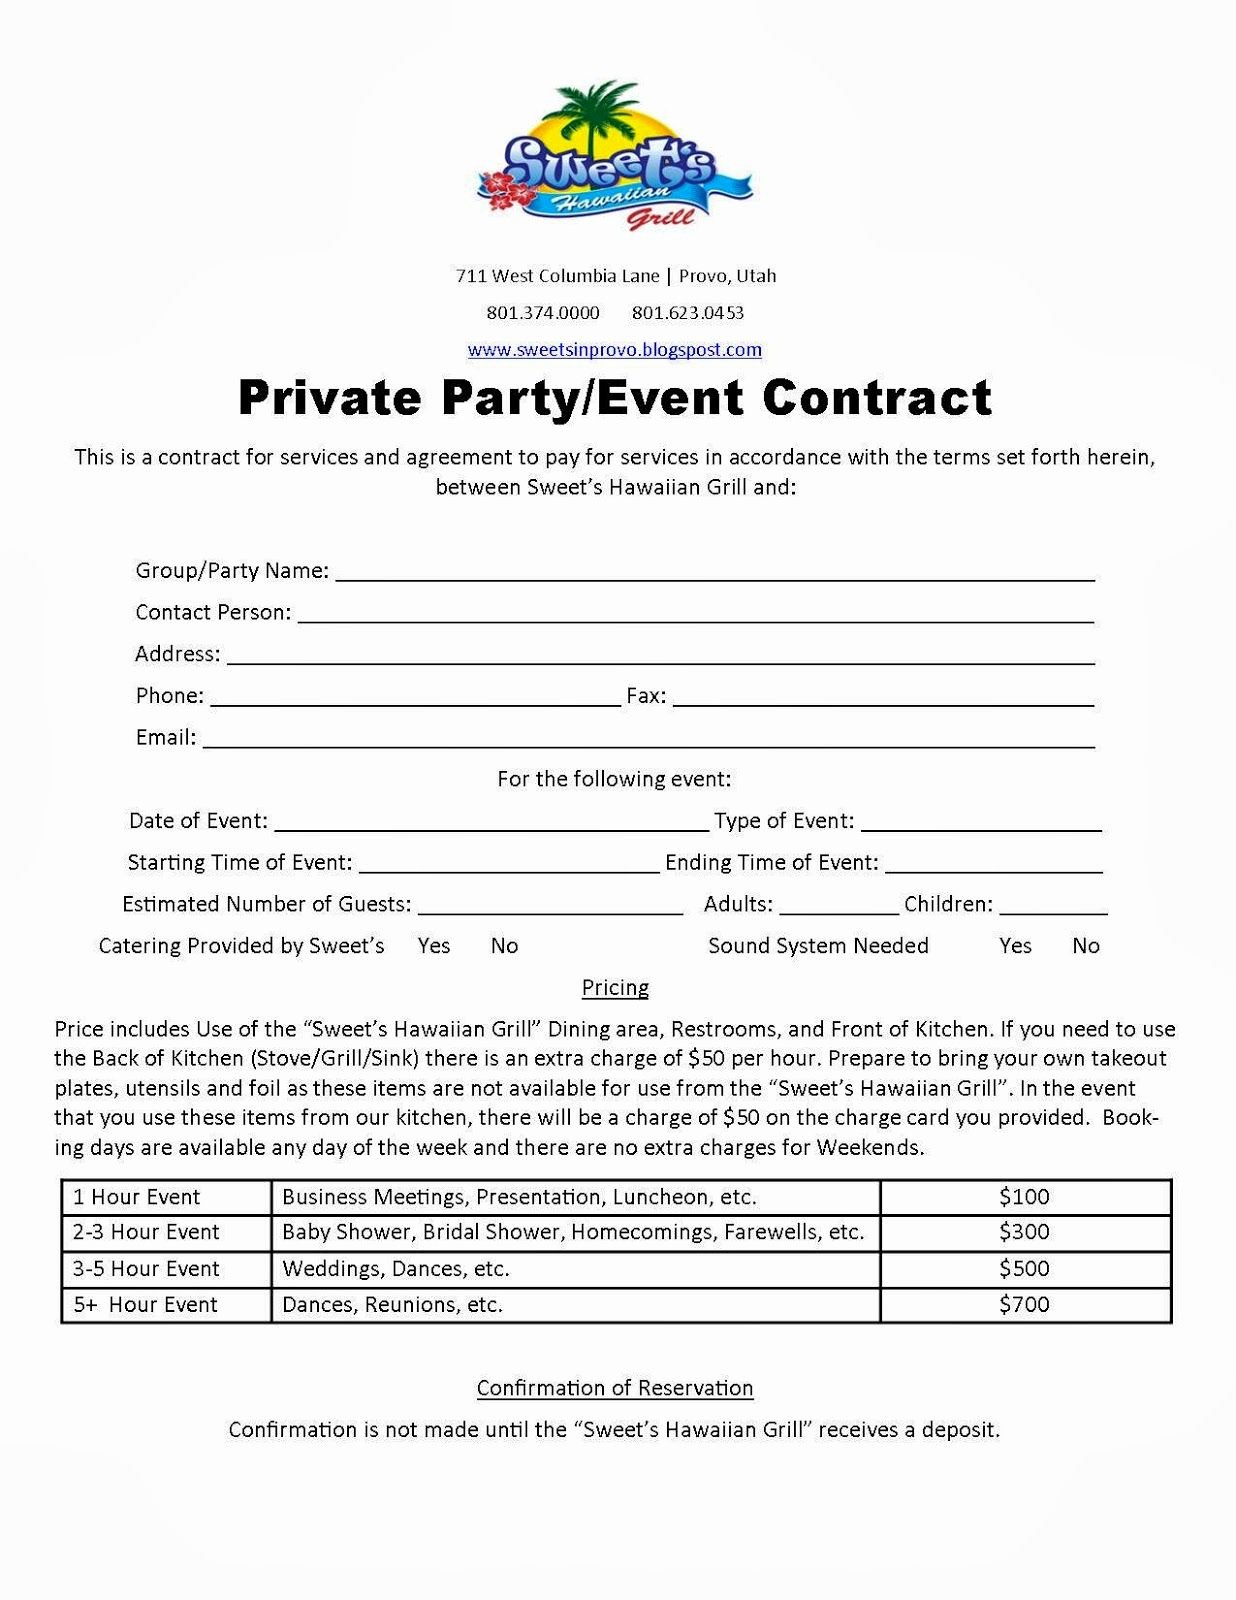 Event Planner Contract Template Inspirational Party Planner Contract Template Google Search